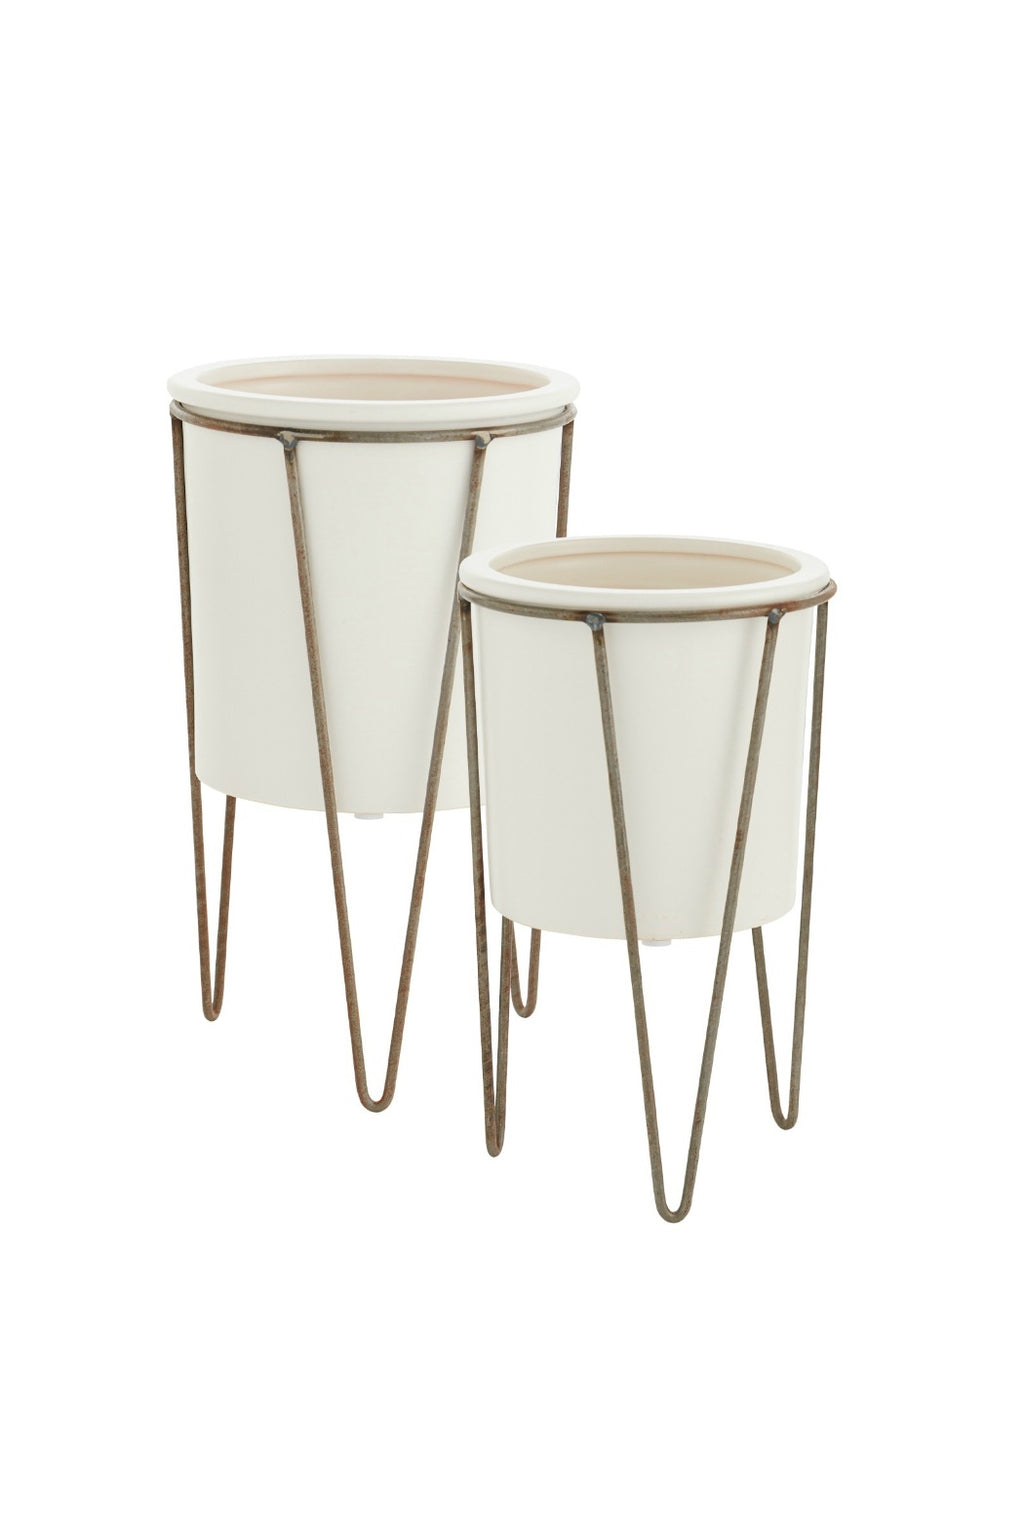 Accent Decor Cassa Plant Stand